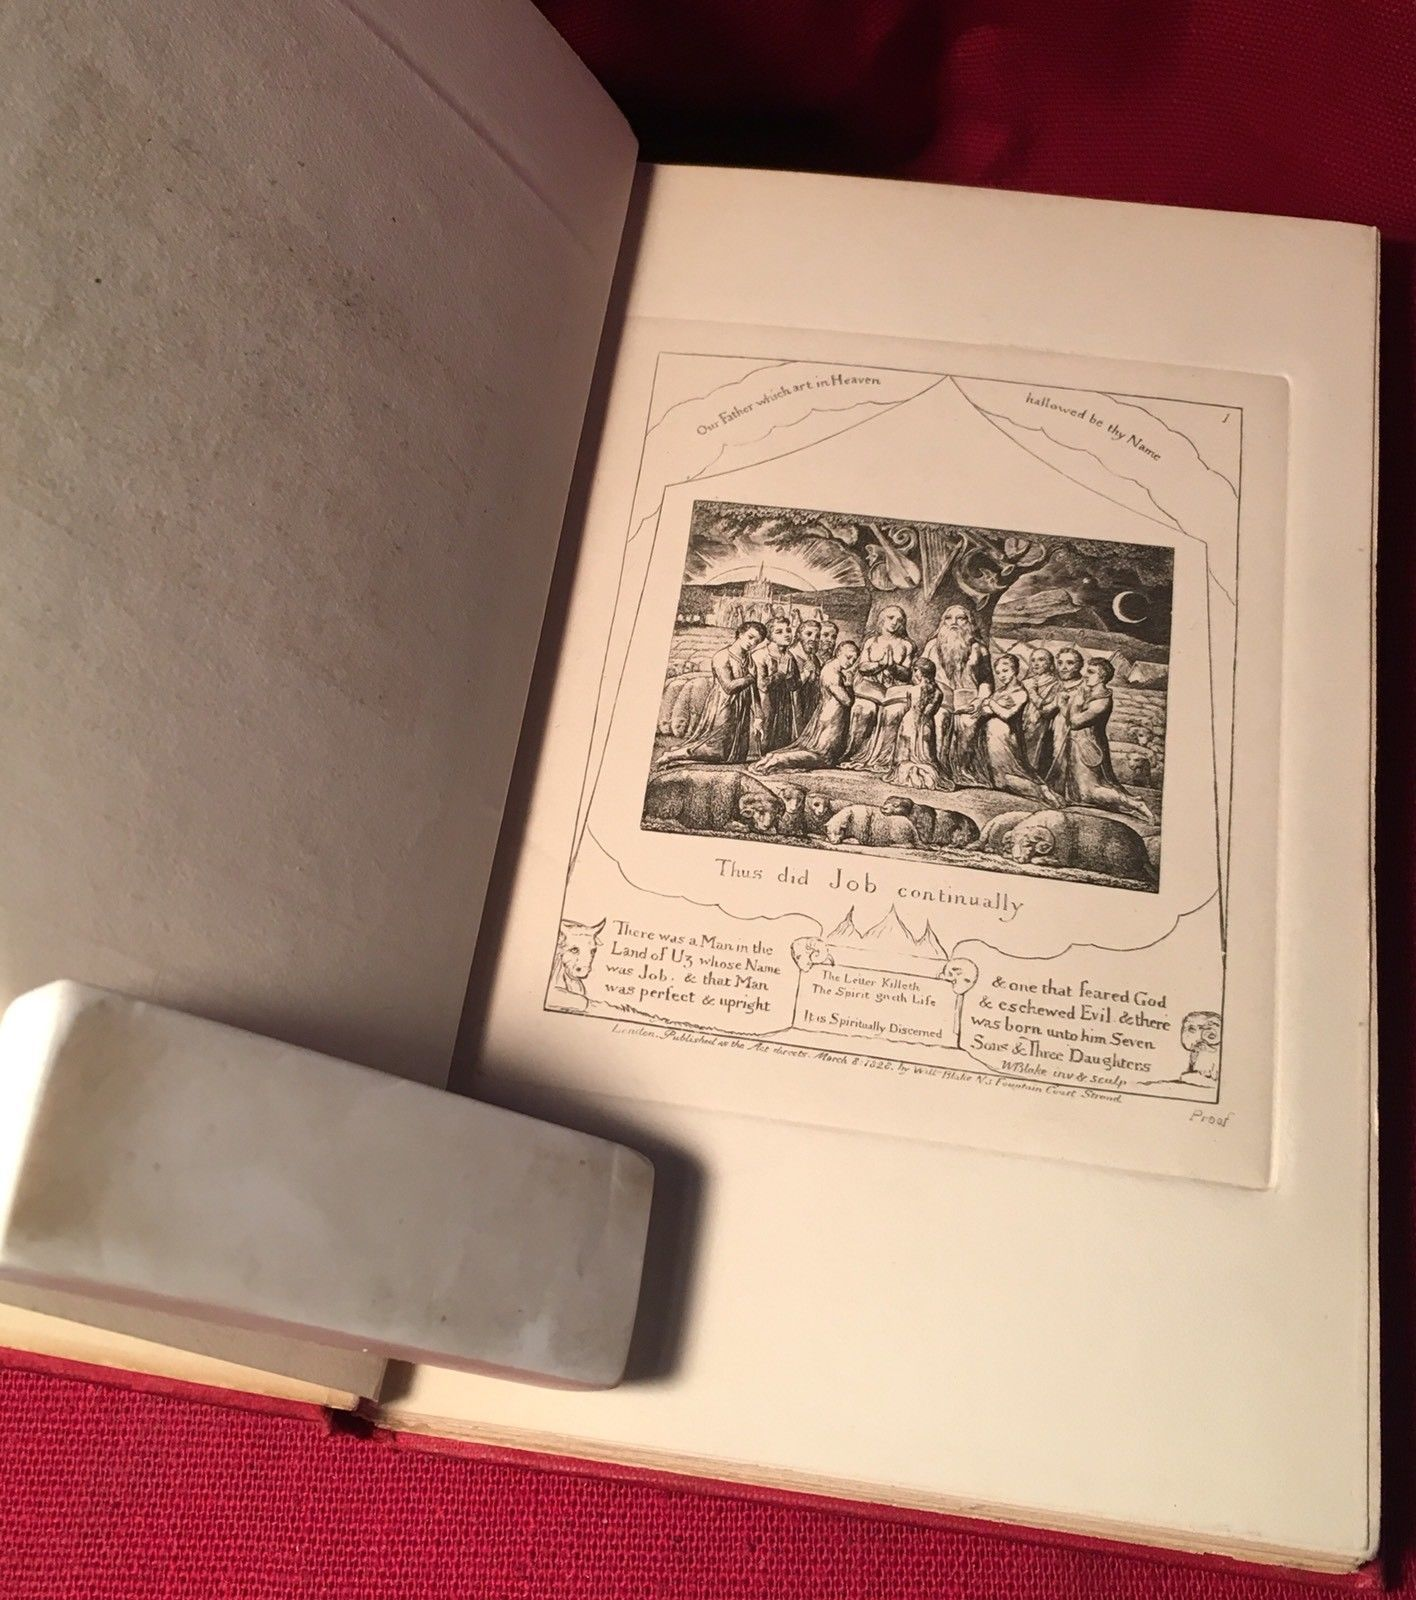 Illustrations From The Book Of Job - William Blake - 1903 Edition In Miniature.